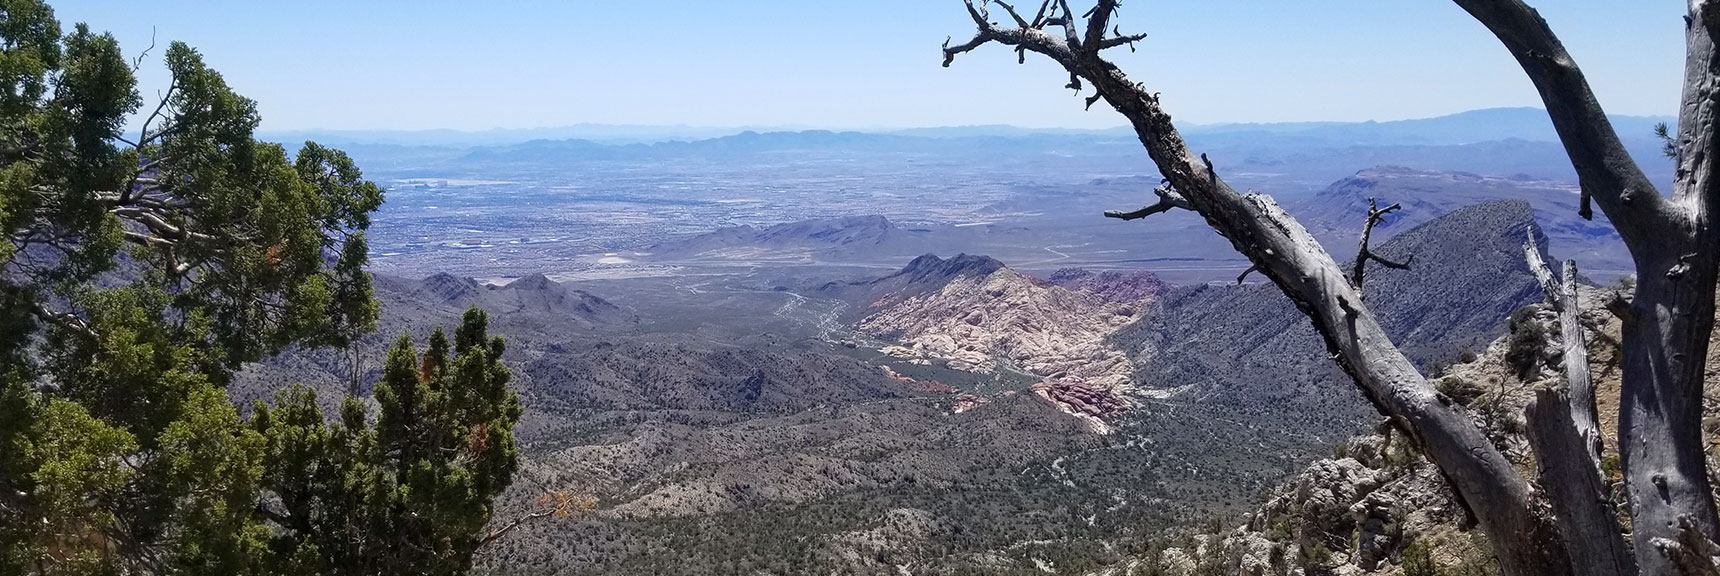 View into Calico Basin from La Madre Mt. Summit Route